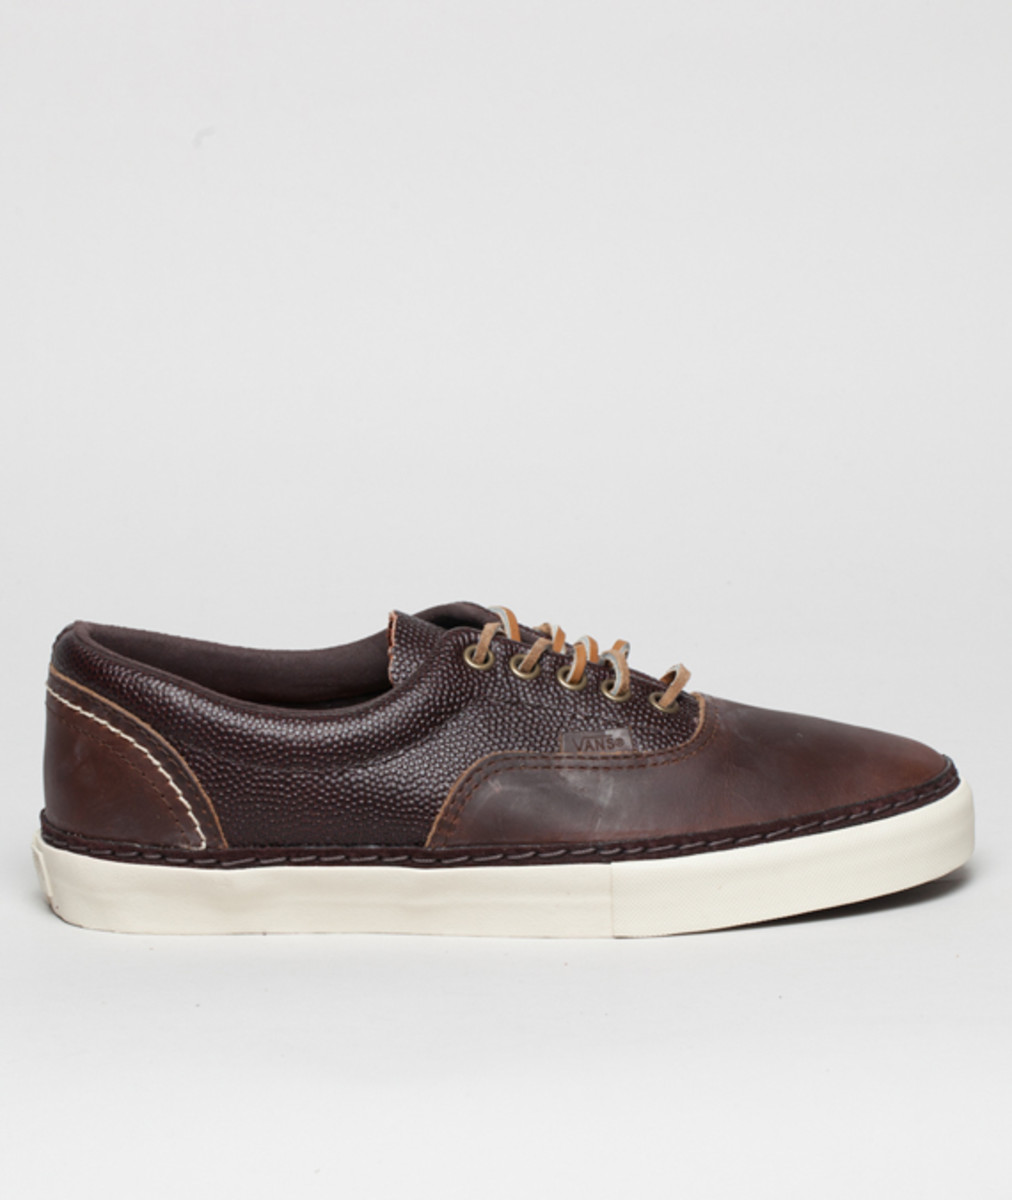 horween-leather-vans-era-hw-lx-04